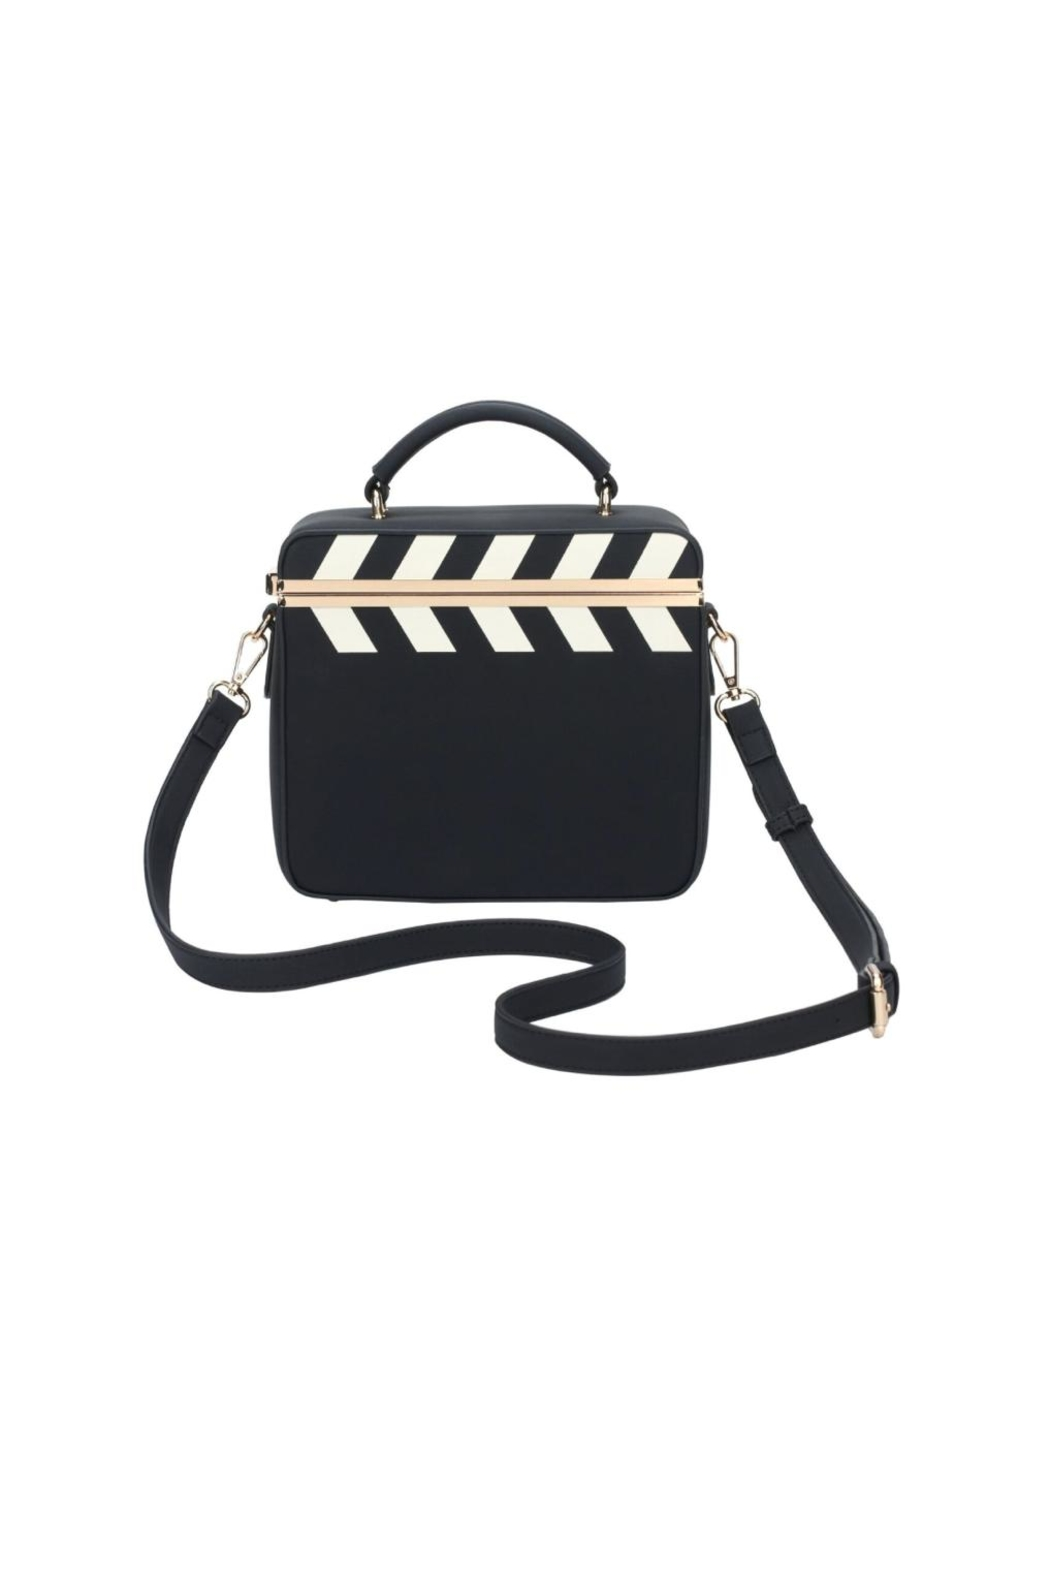 Vendula London Cinema Light-Up Bag - Front Full Image